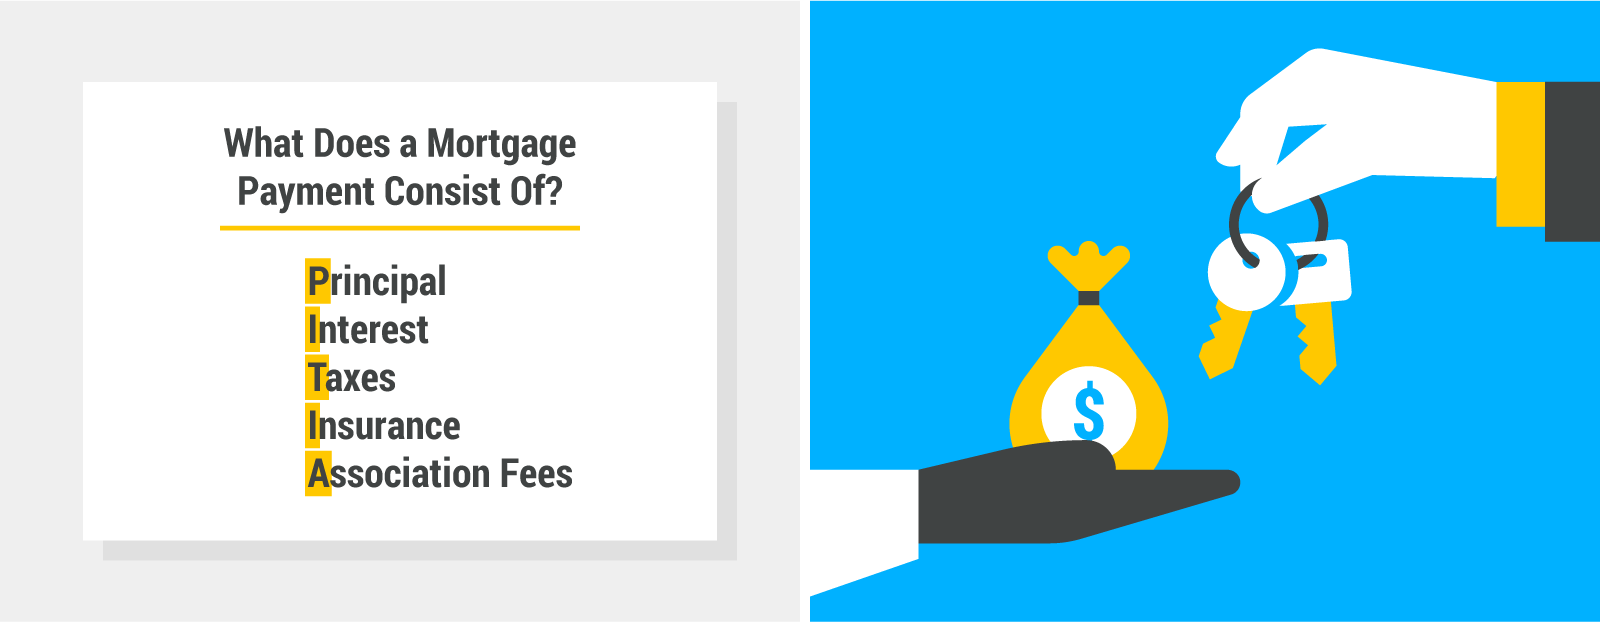 What does a mortgage payment consist of?